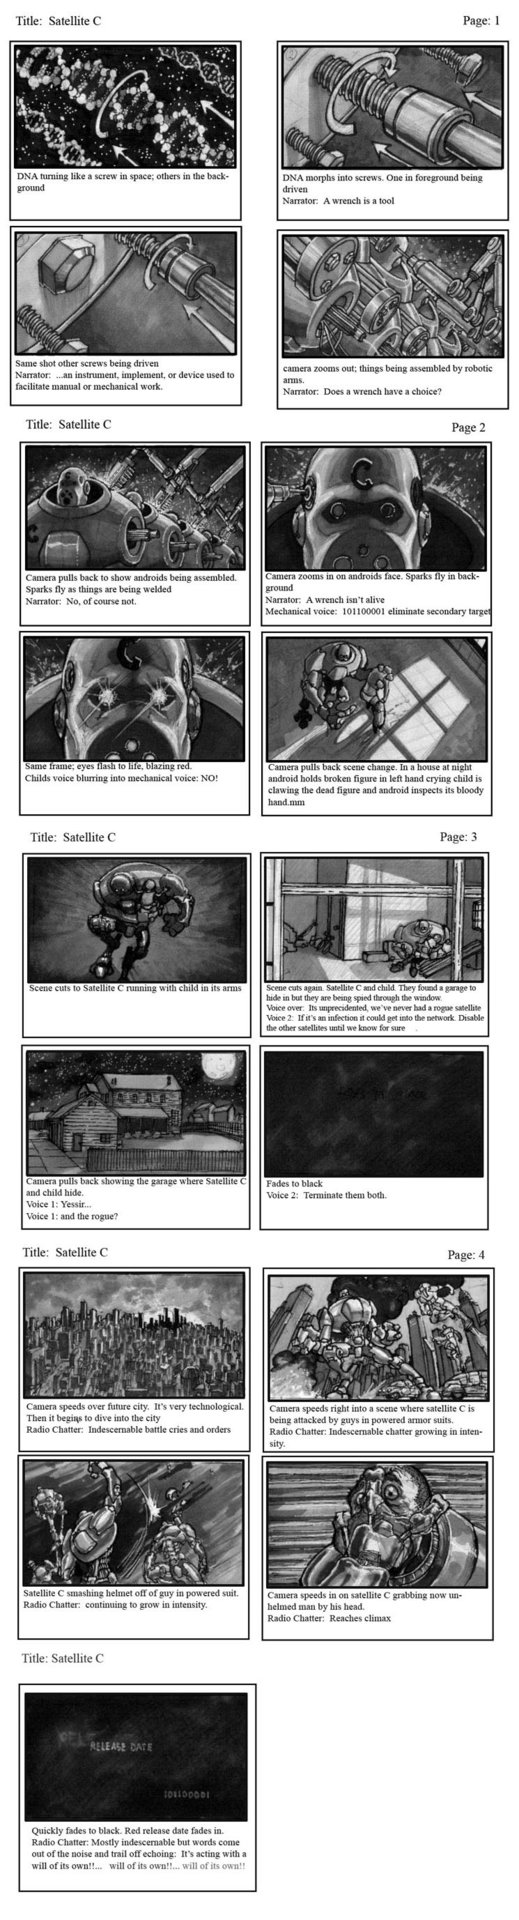 Jason borne satelitecstoryboard